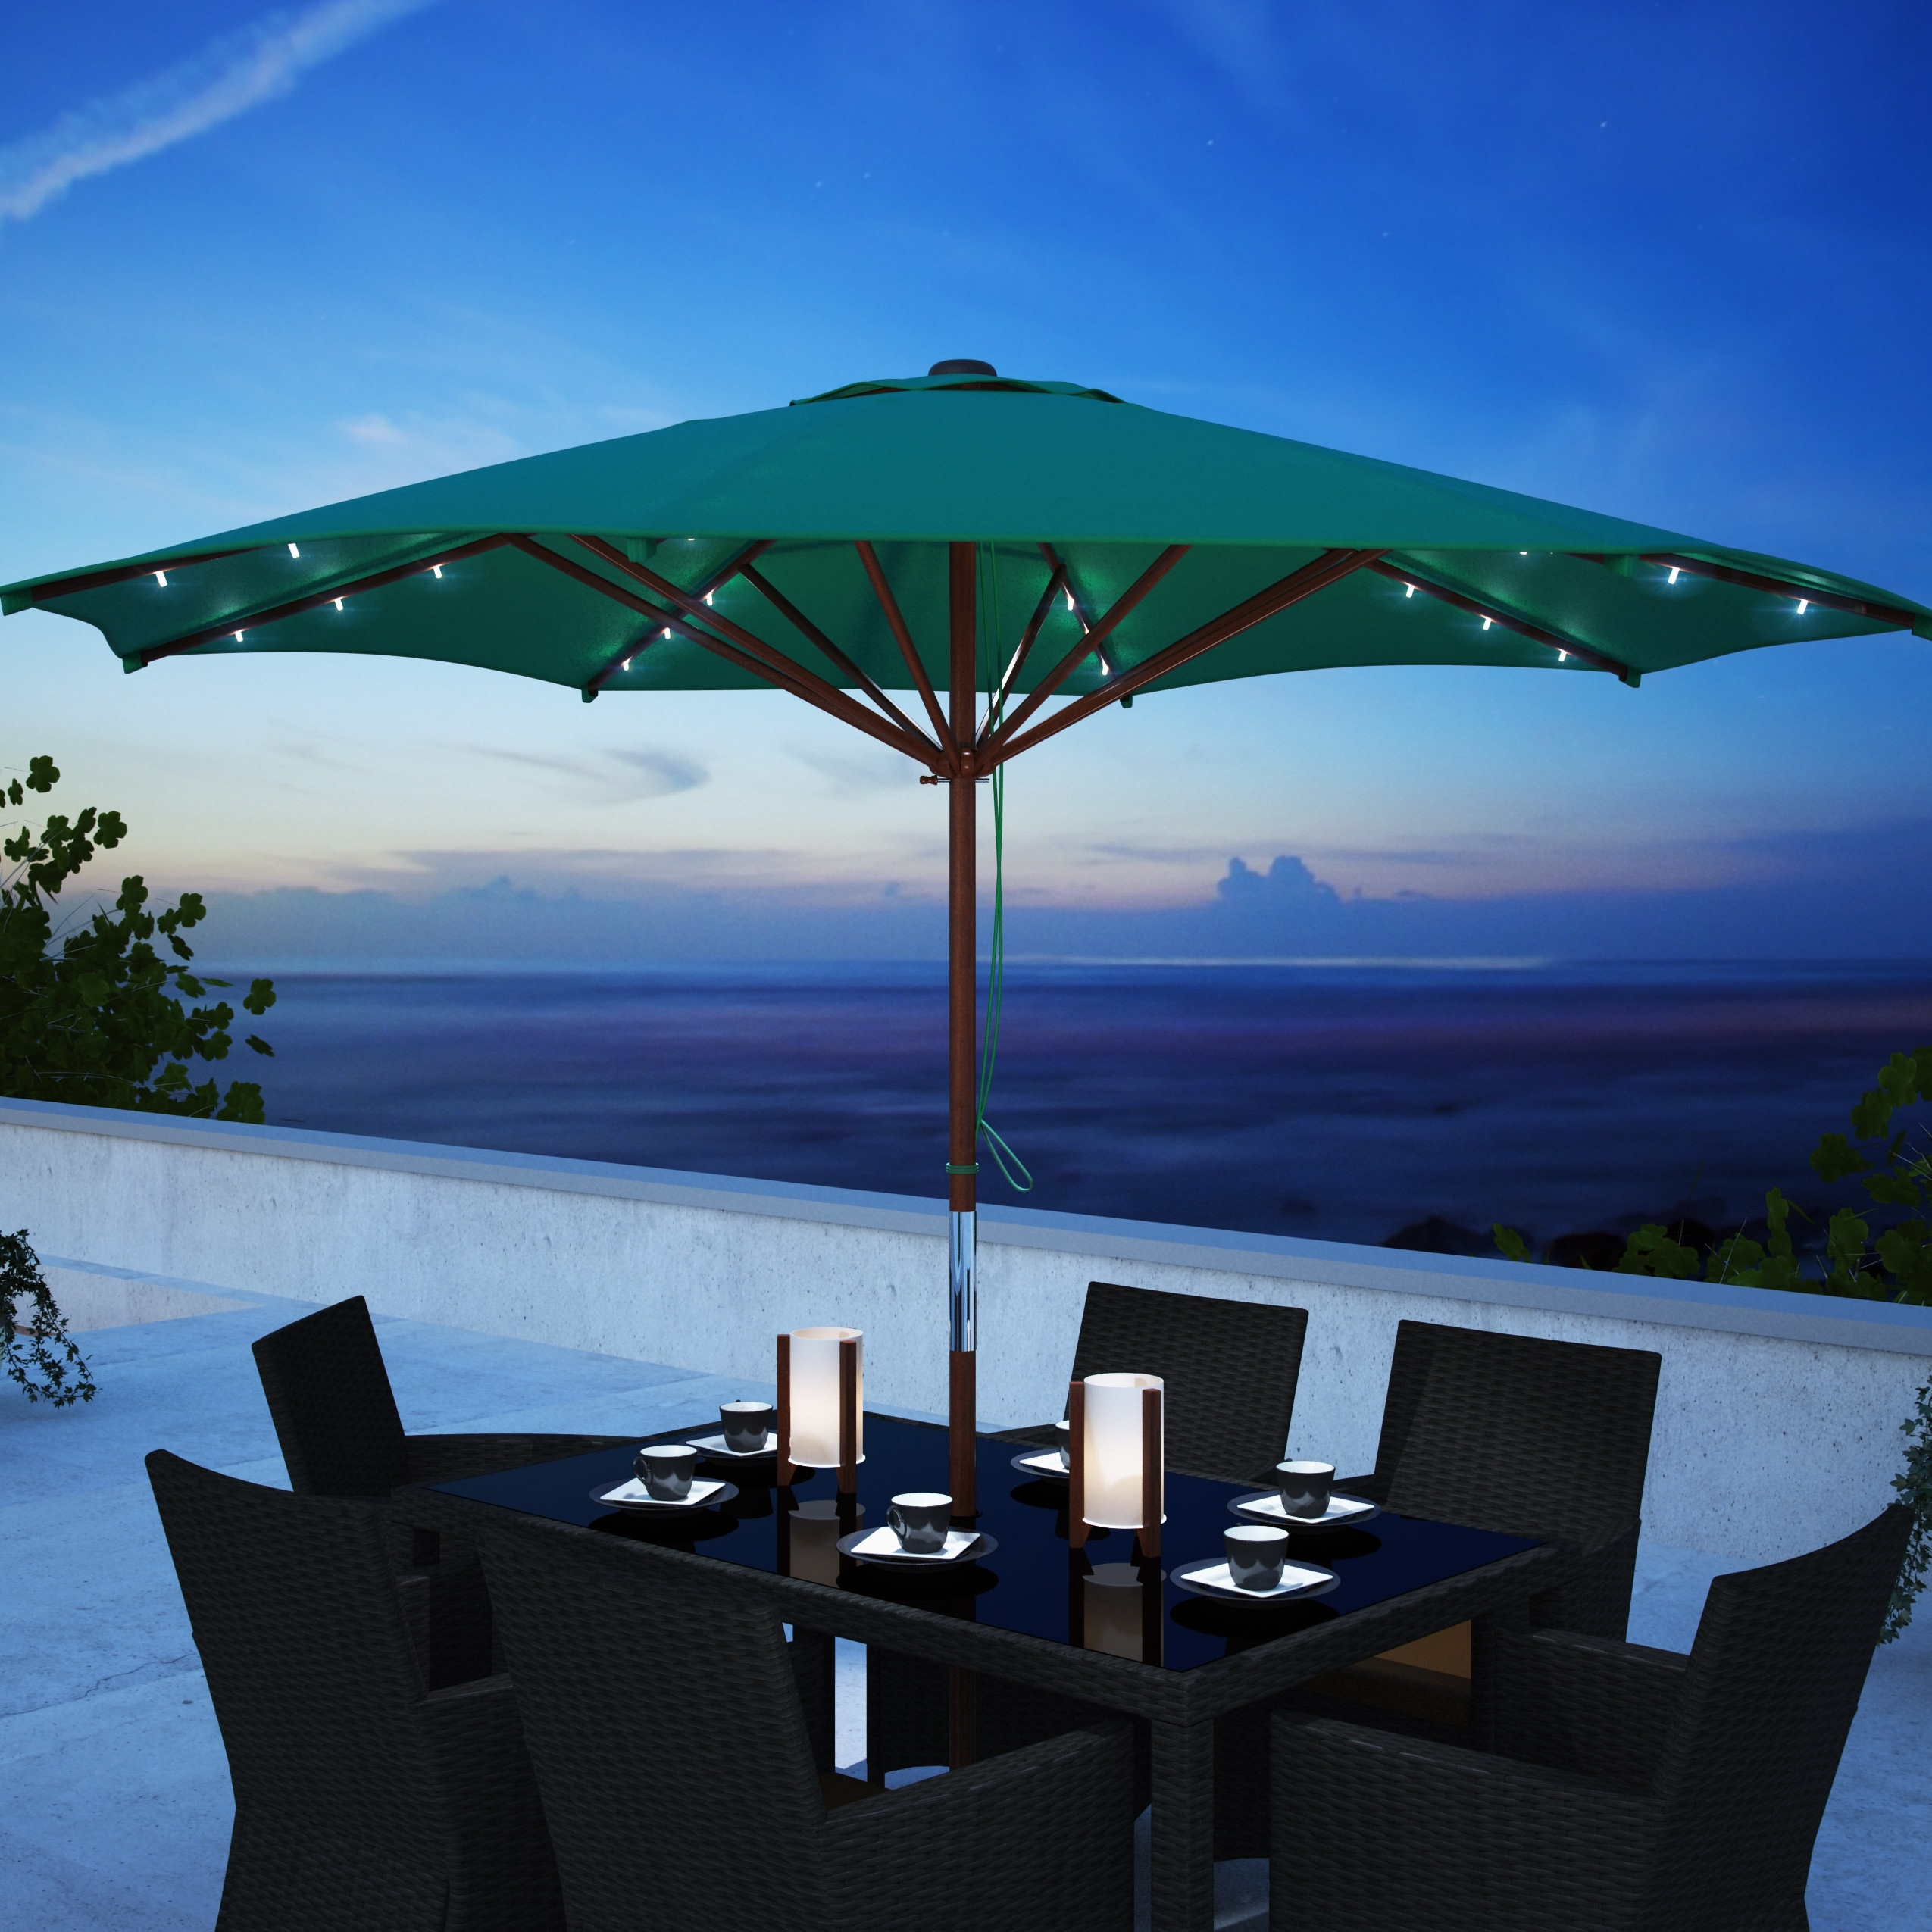 Patio Umbrellas With Led Lights With Regard To Most Popular Corliving Patio Umbrella With Solar Power Led Lights Taupe (View 14 of 20)